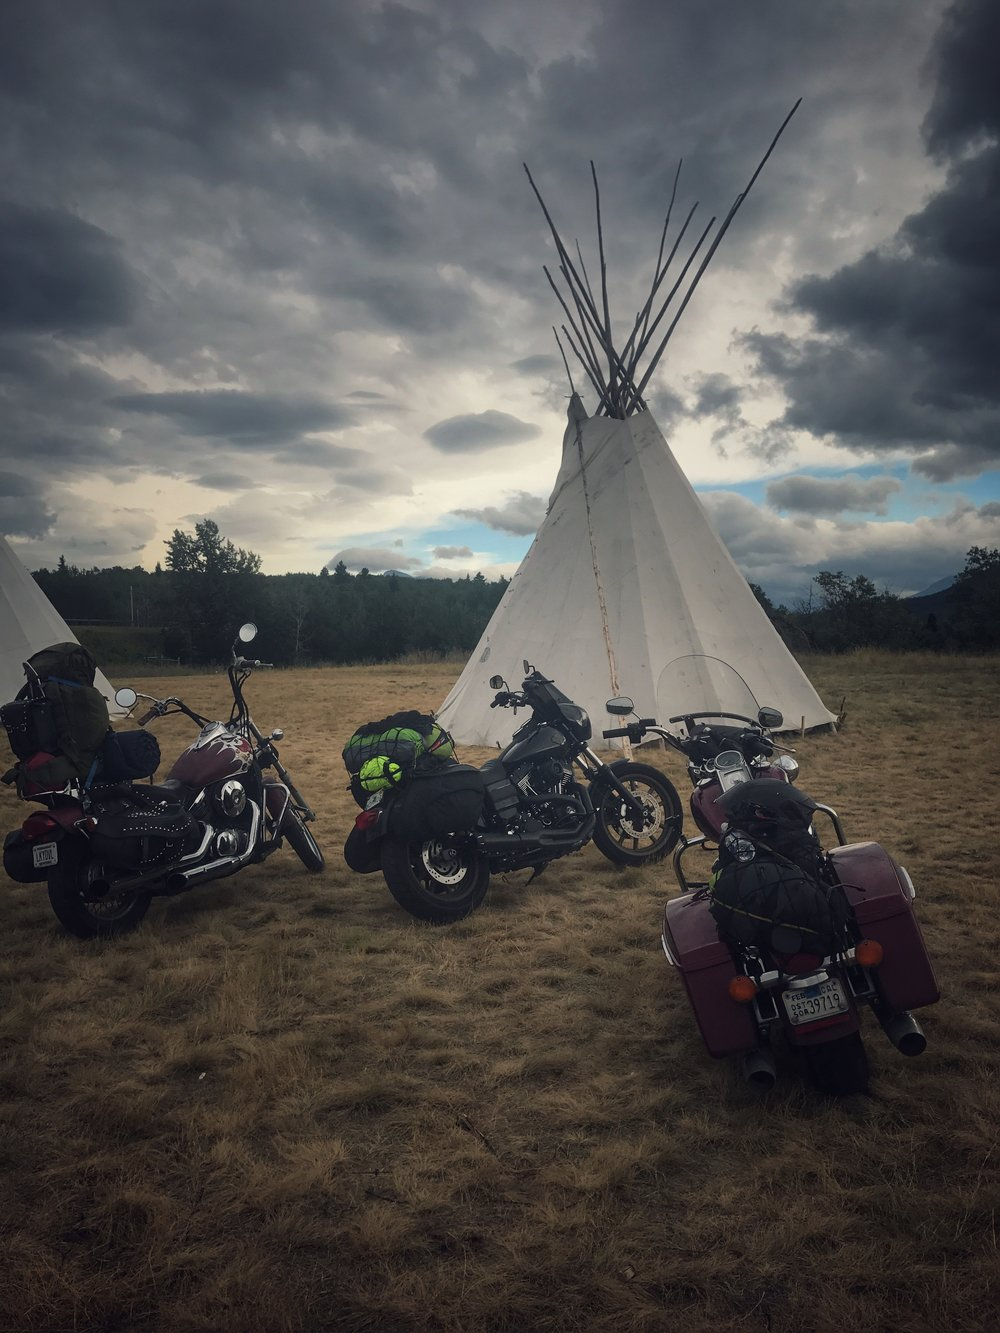 Chewing Black Bones Reservation Glacier National Park Motorcycle Rides. The Lost Latitudes Blog